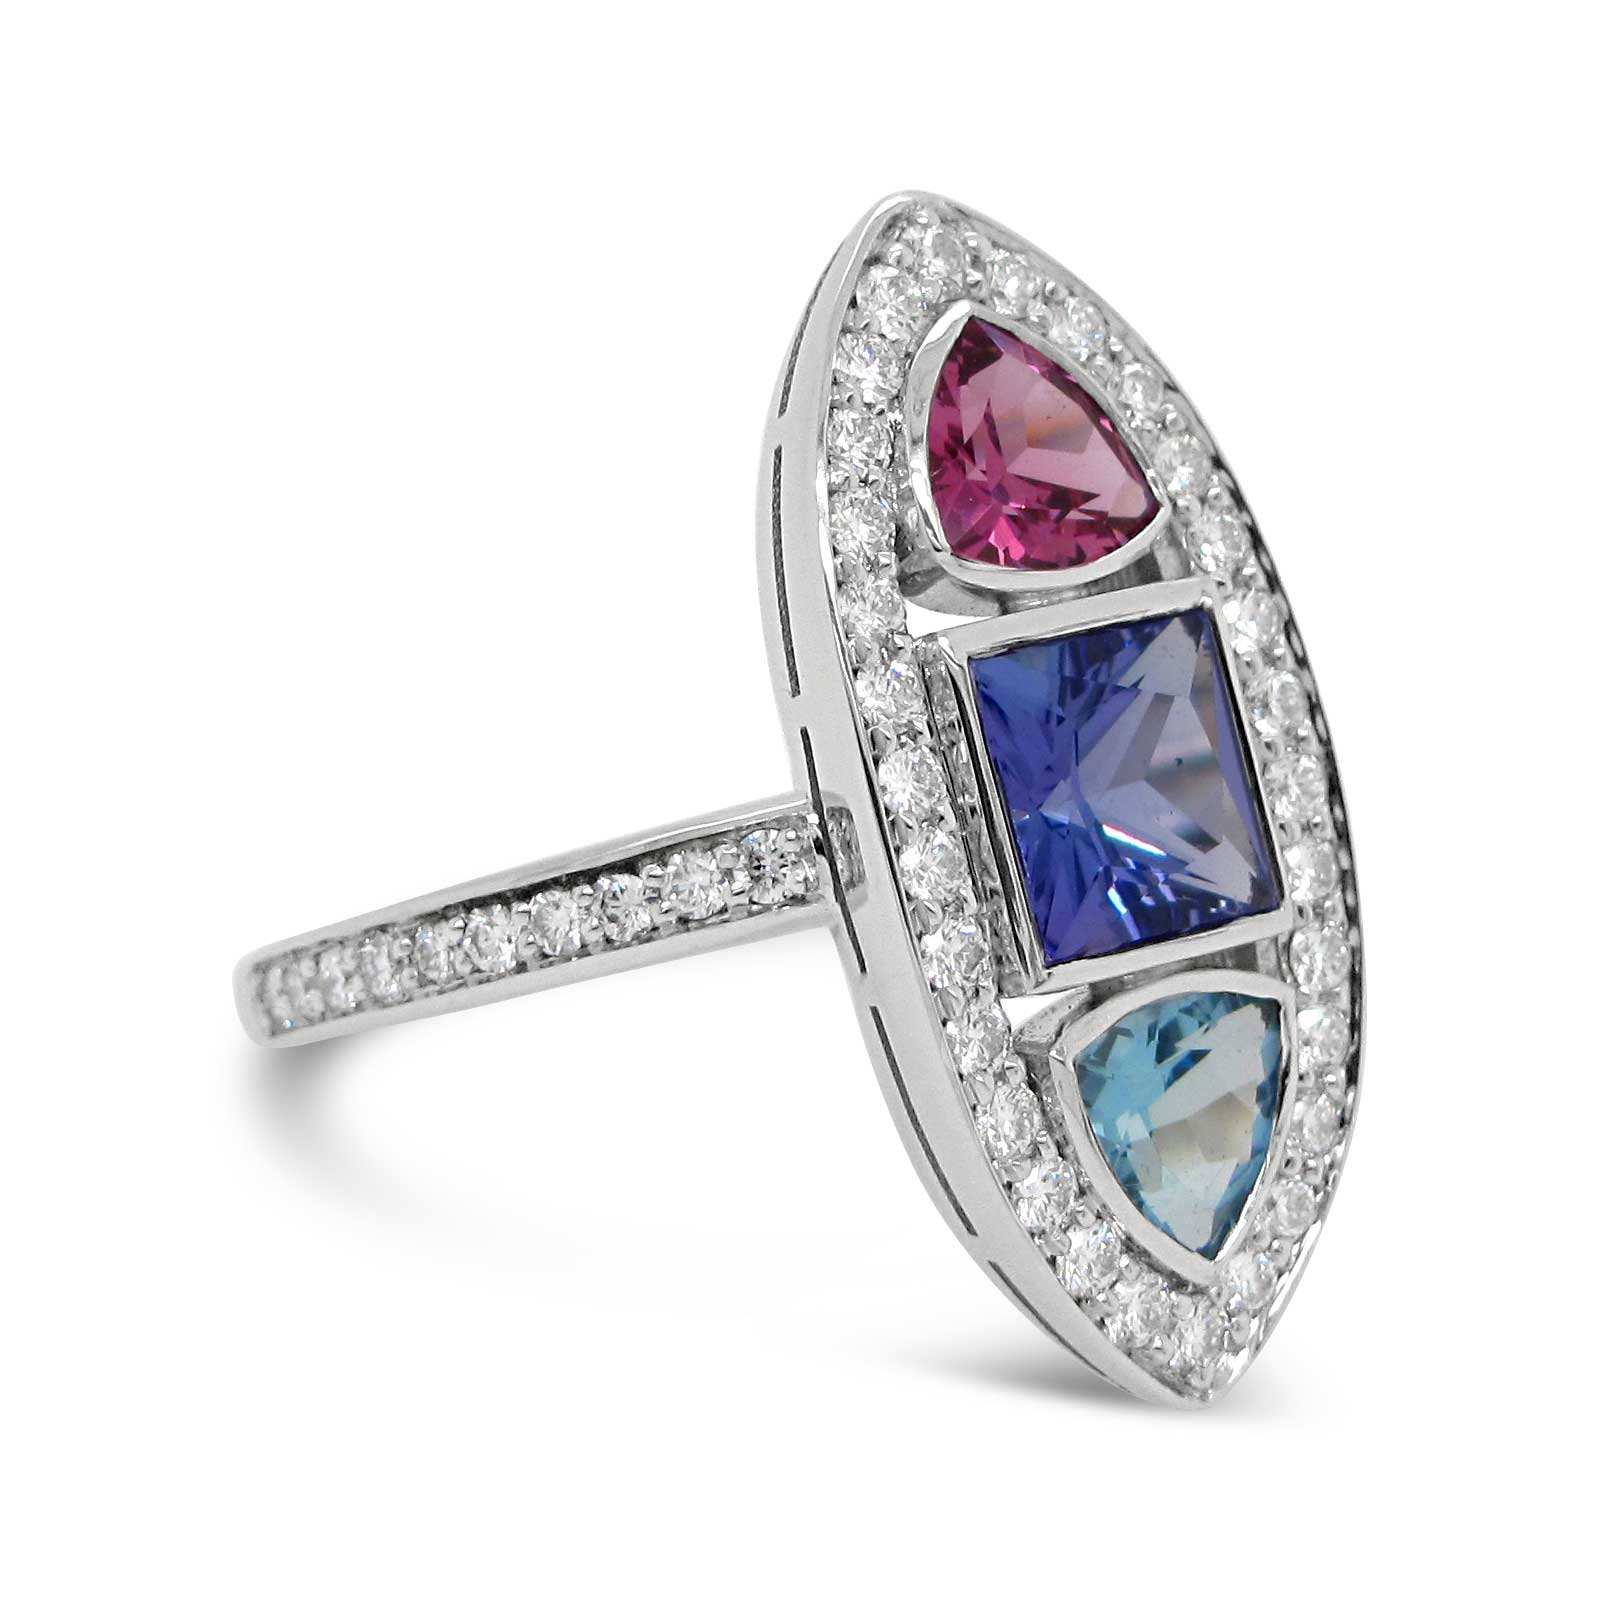 Tanzanite and Garnets with a Diamond Halo